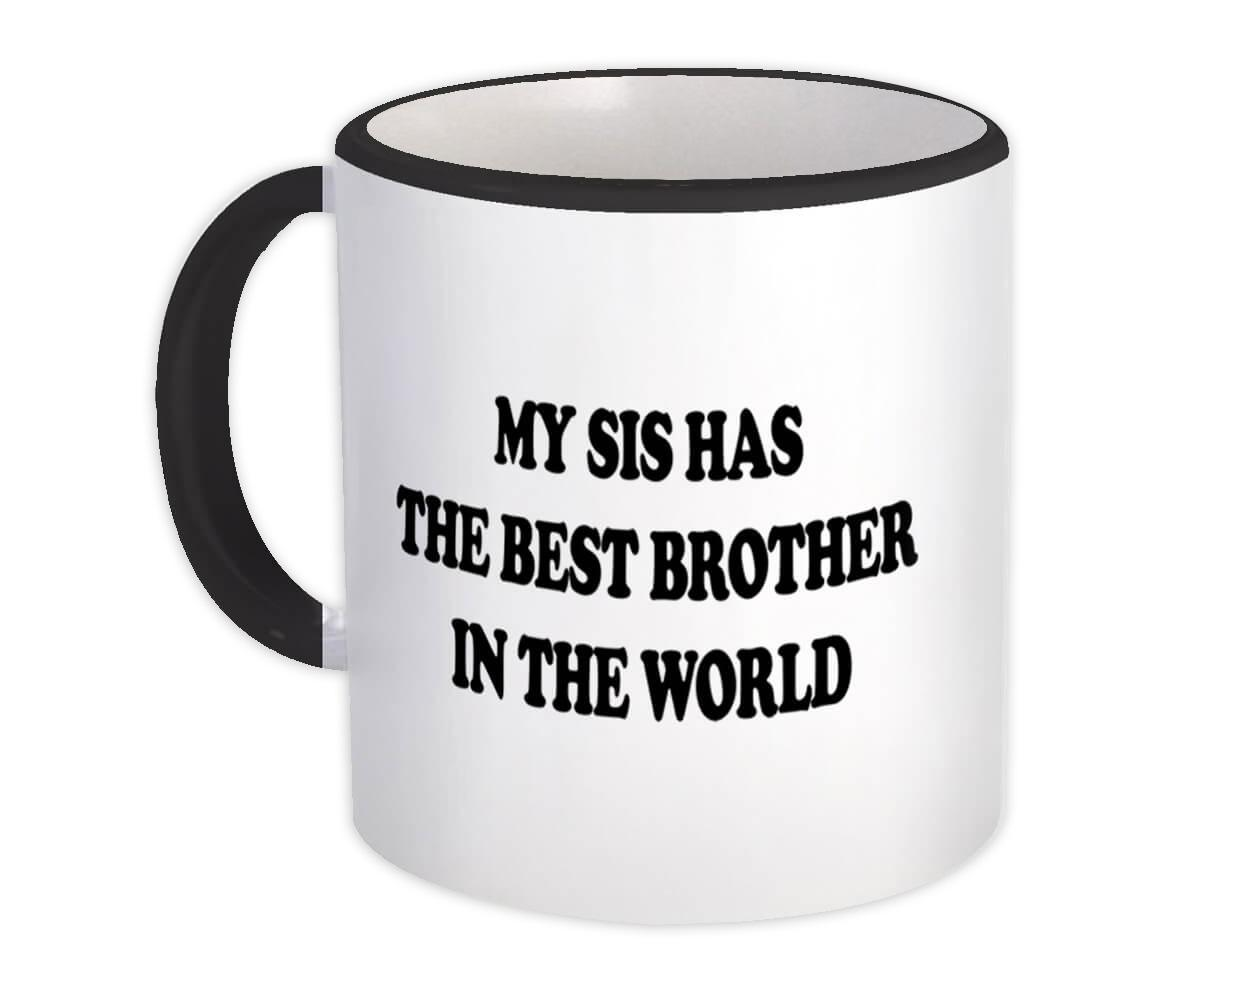 My Sis Has The Best Brother In The World : Gift Mug Brother Sister Family Birthday